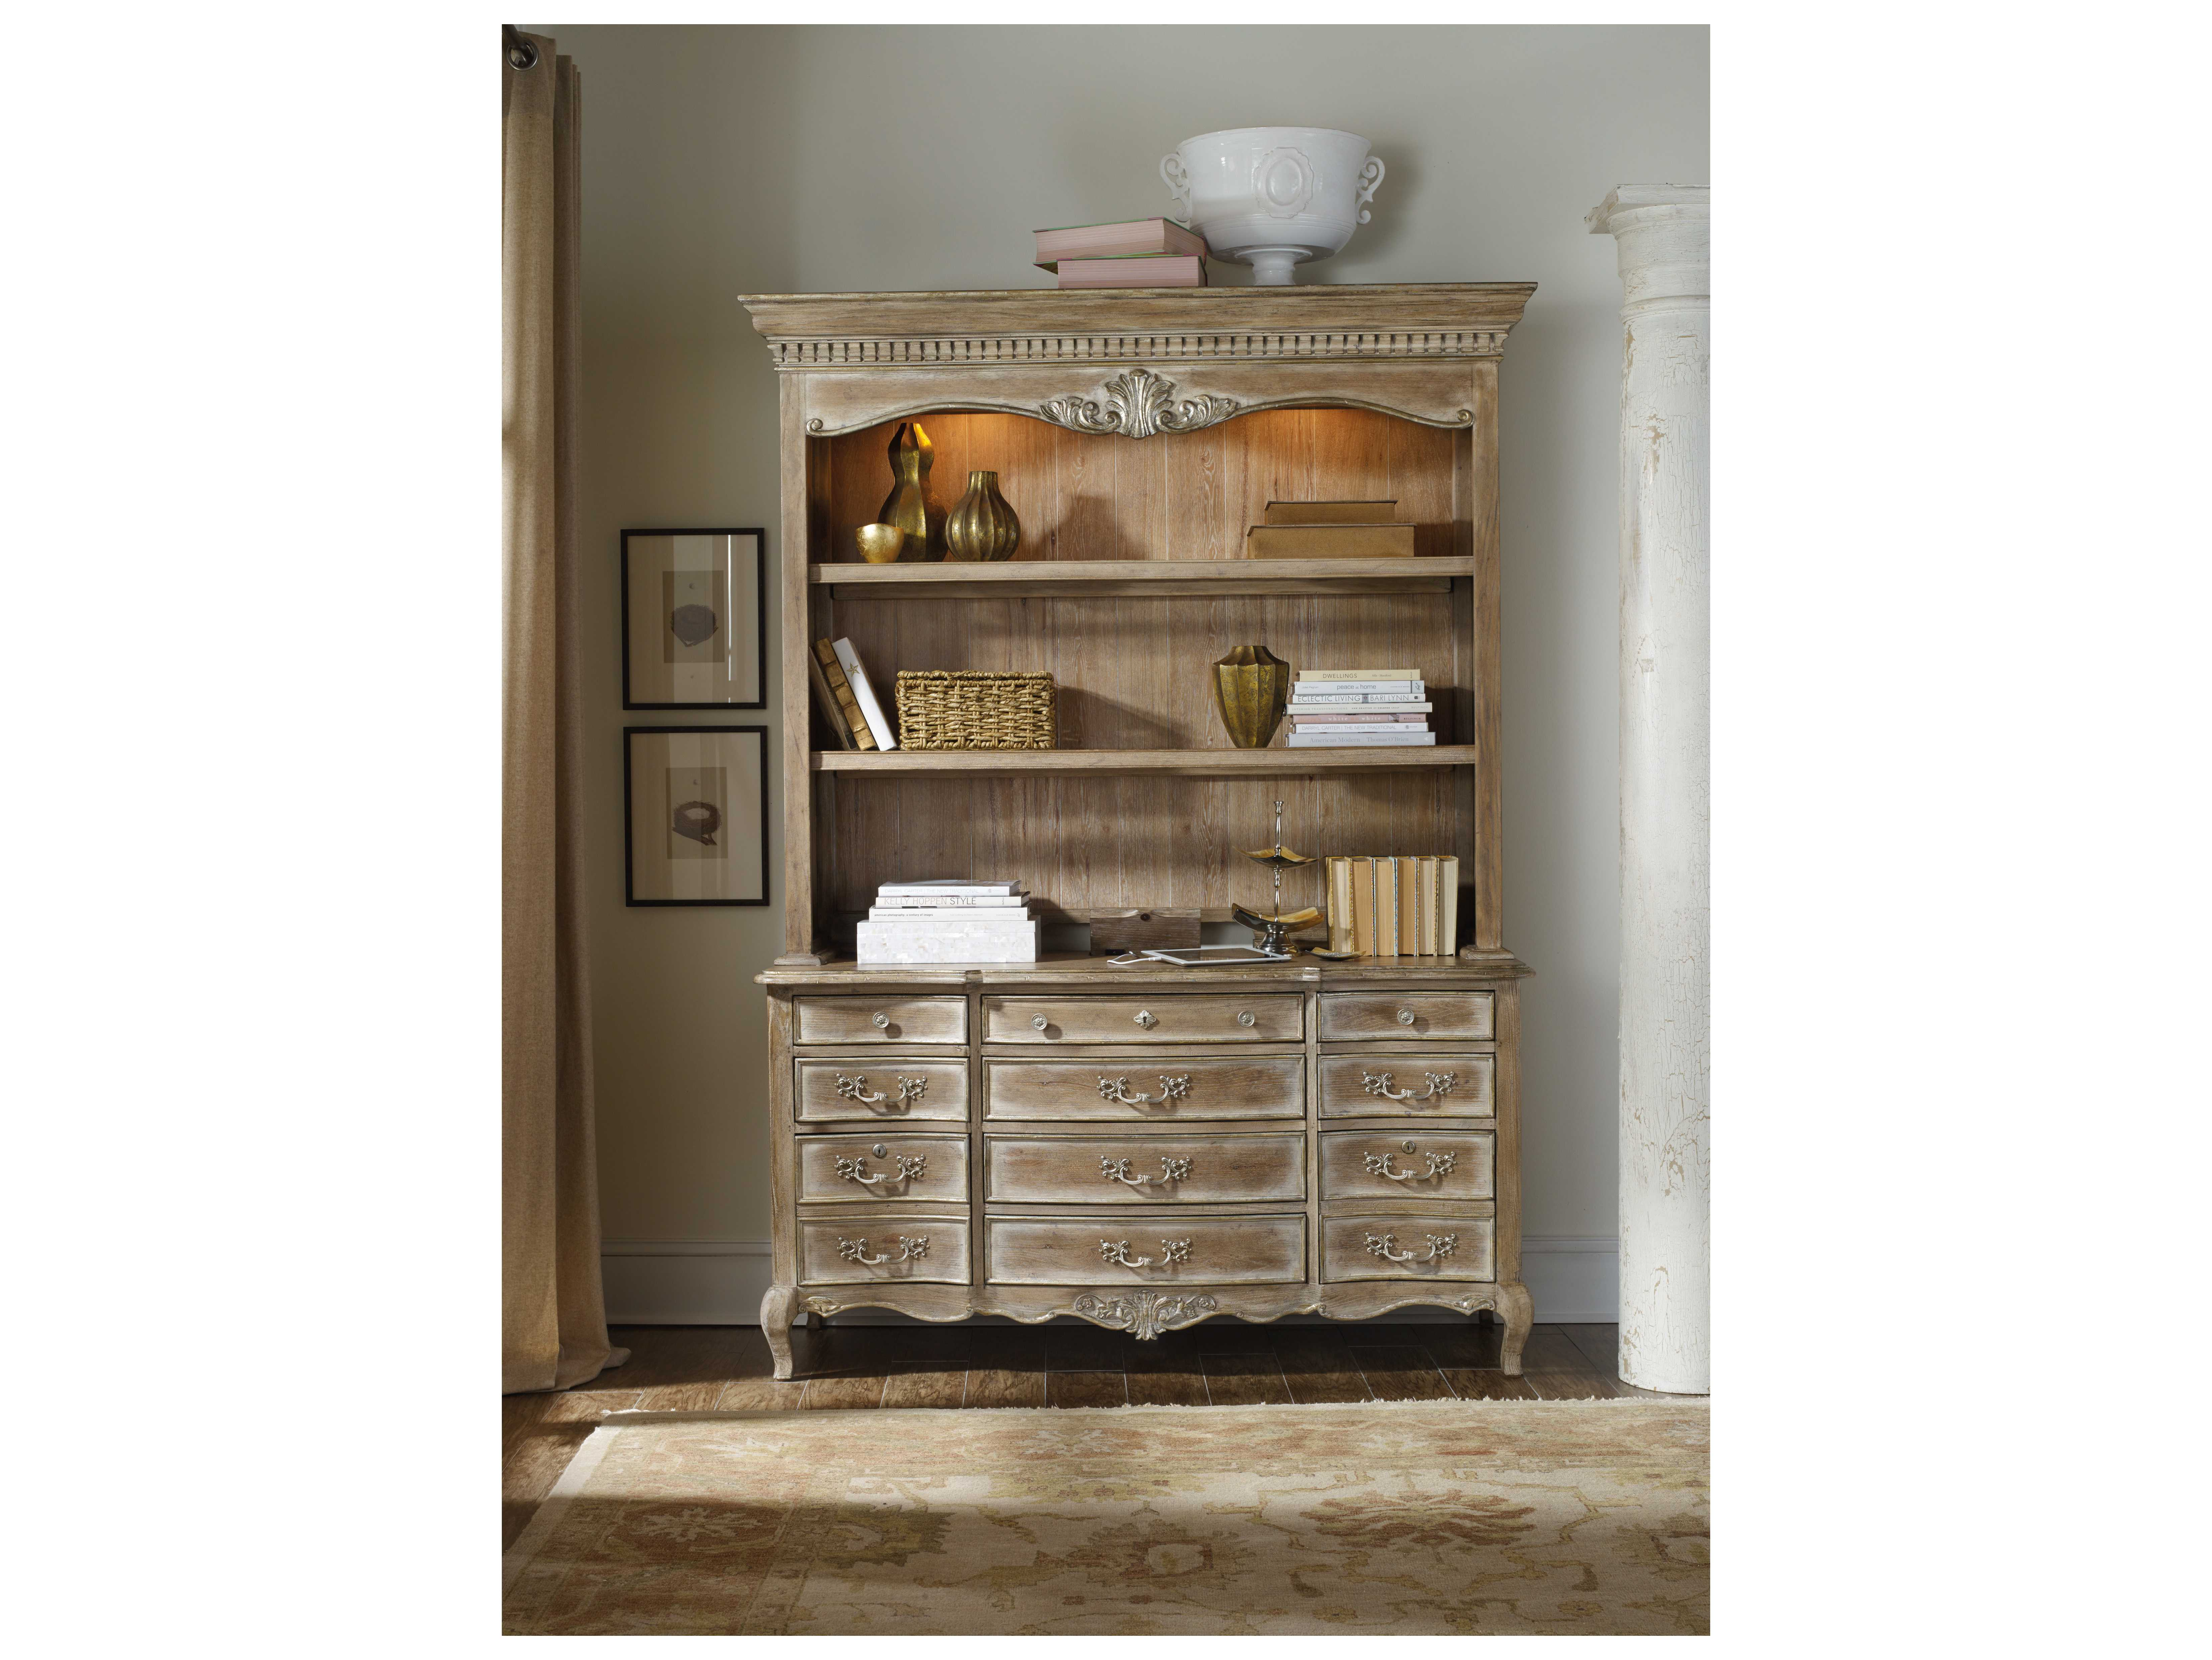 Credenza La Maison : Hooker furniture la maison du travial taupe with white & light gold